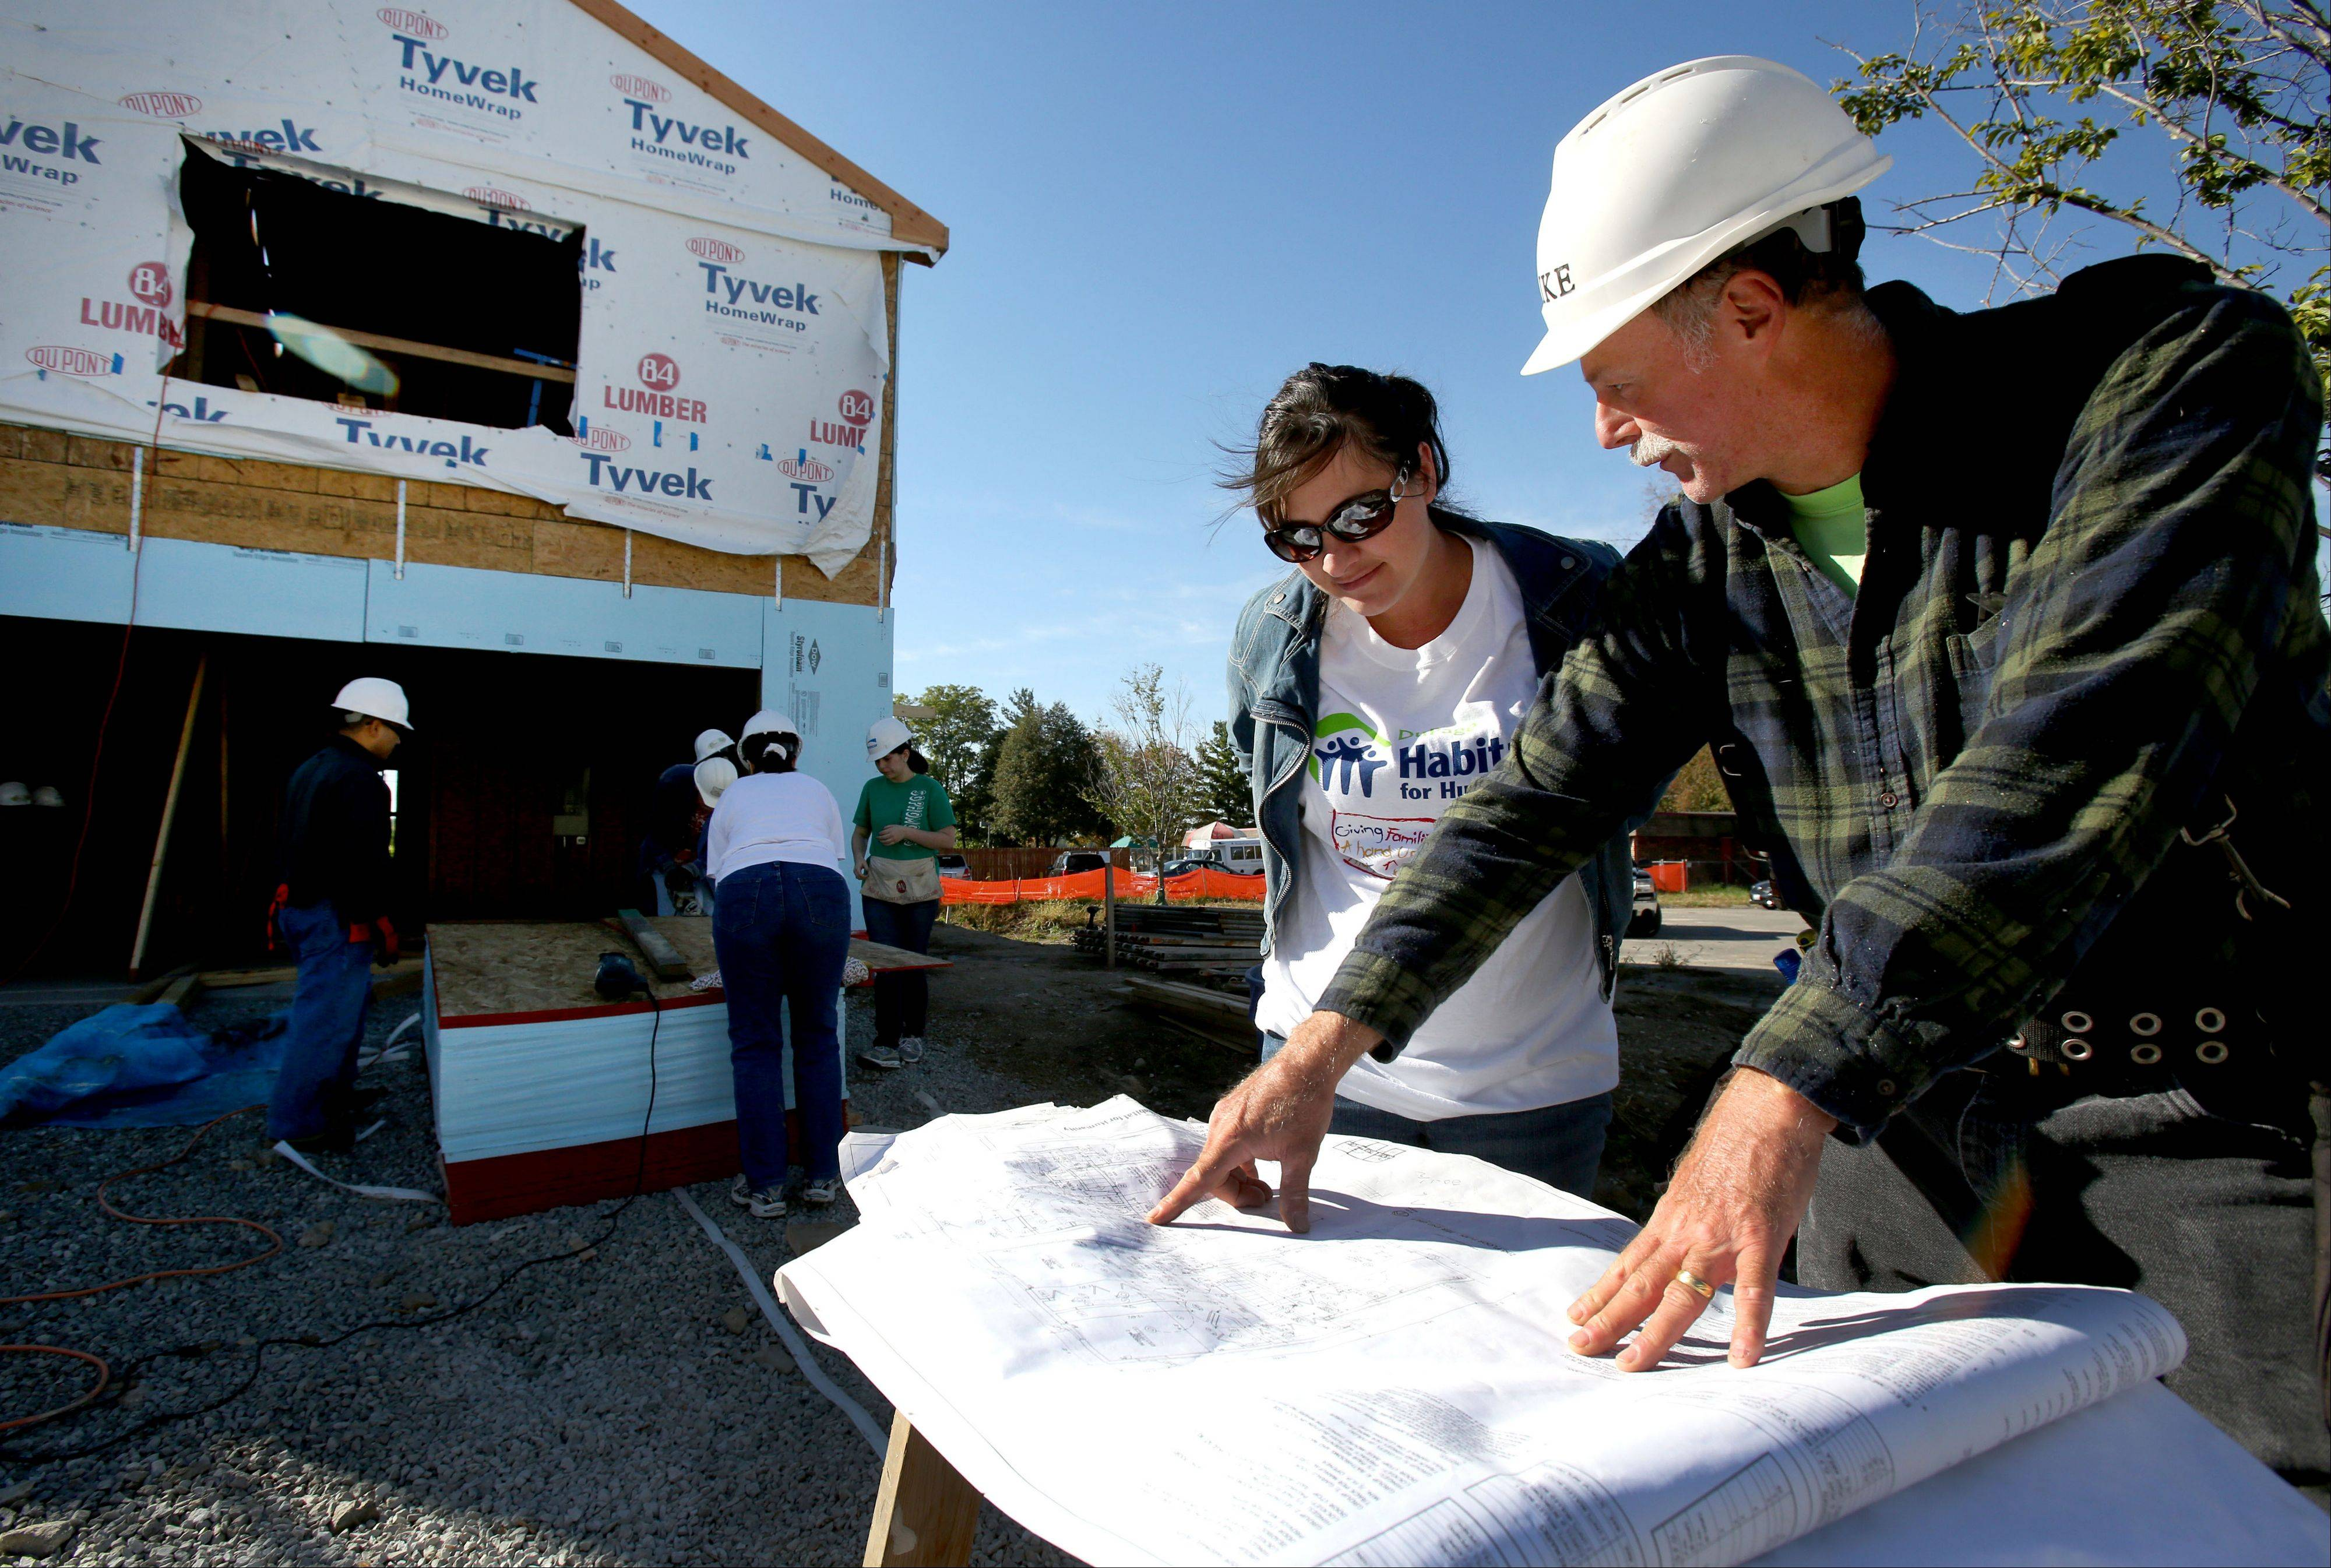 Volunteer crew manager Mike Hillenbrand shows Tracy Bryson of Glen Ellyn the blueprints of the townhouses Habitat for Humanity is building near Glen Ellyn.